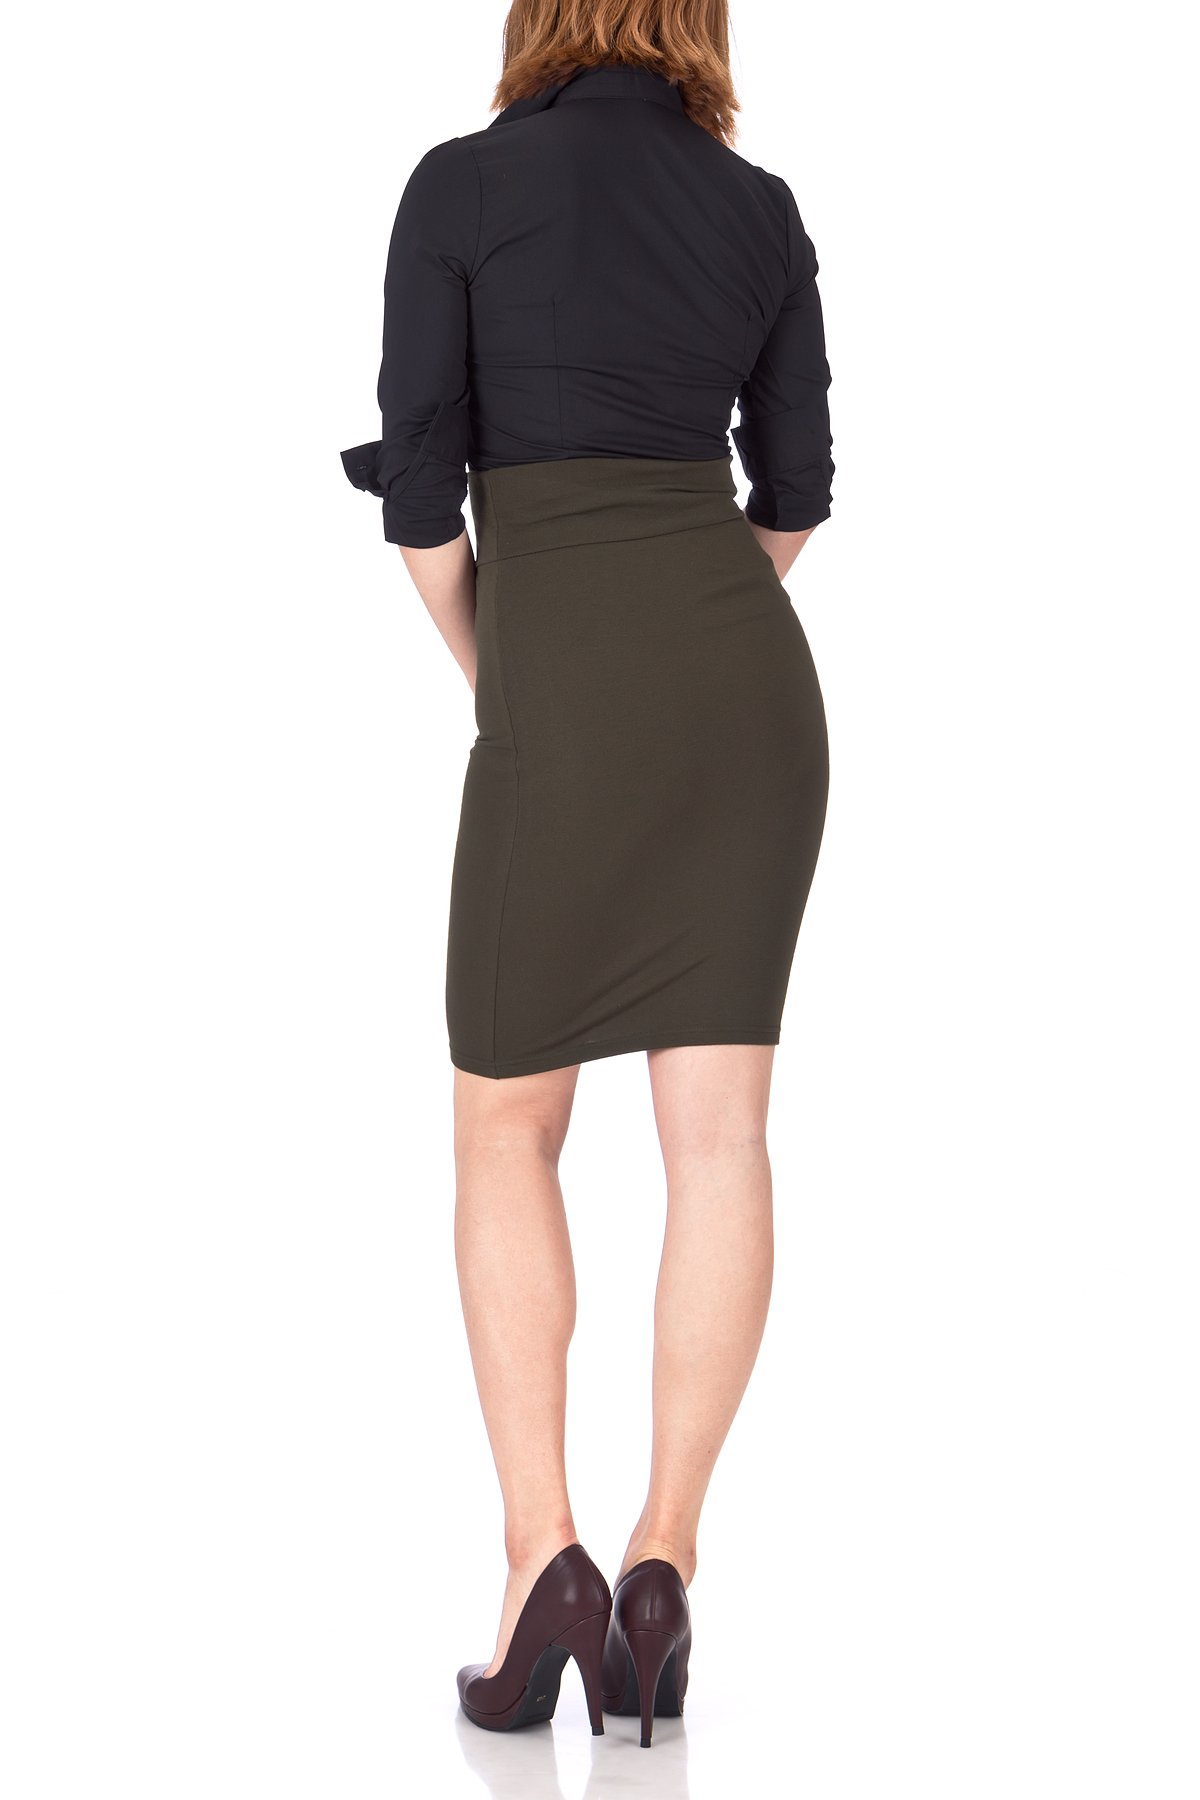 Every Occasion Stretch Pull on Wide High Waist Bodycon Pencil Knee Length Midi Skirt Khaki 05